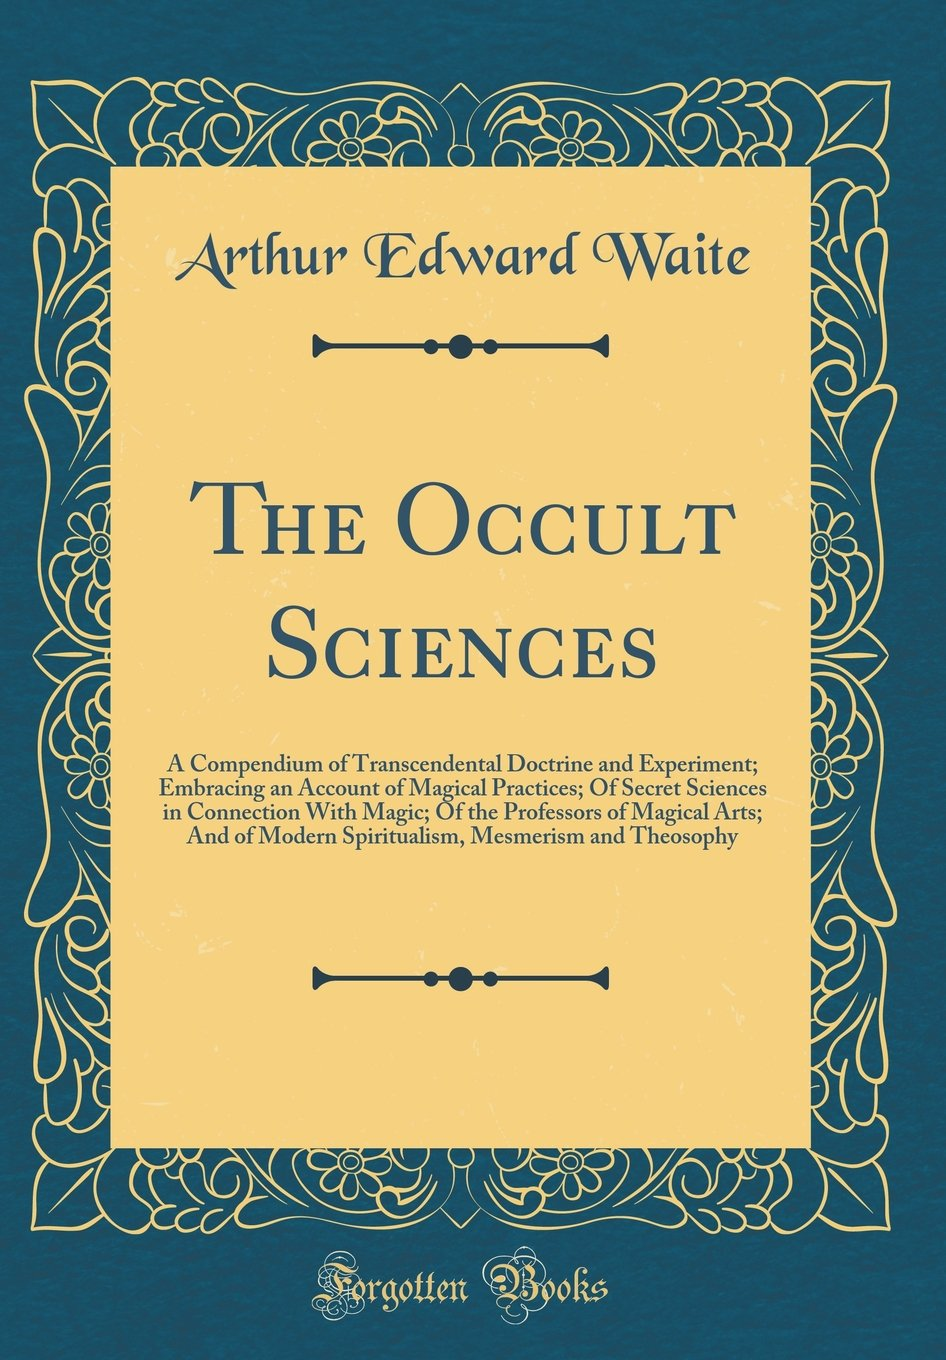 The Occult Sciences: A Compendium of Transcendental Doctrine and Experiment; Embracing an Account of Magical Practices; Of Secret Sciences in ... Modern Spiritualism, Mesmerism and Theosophy pdf epub